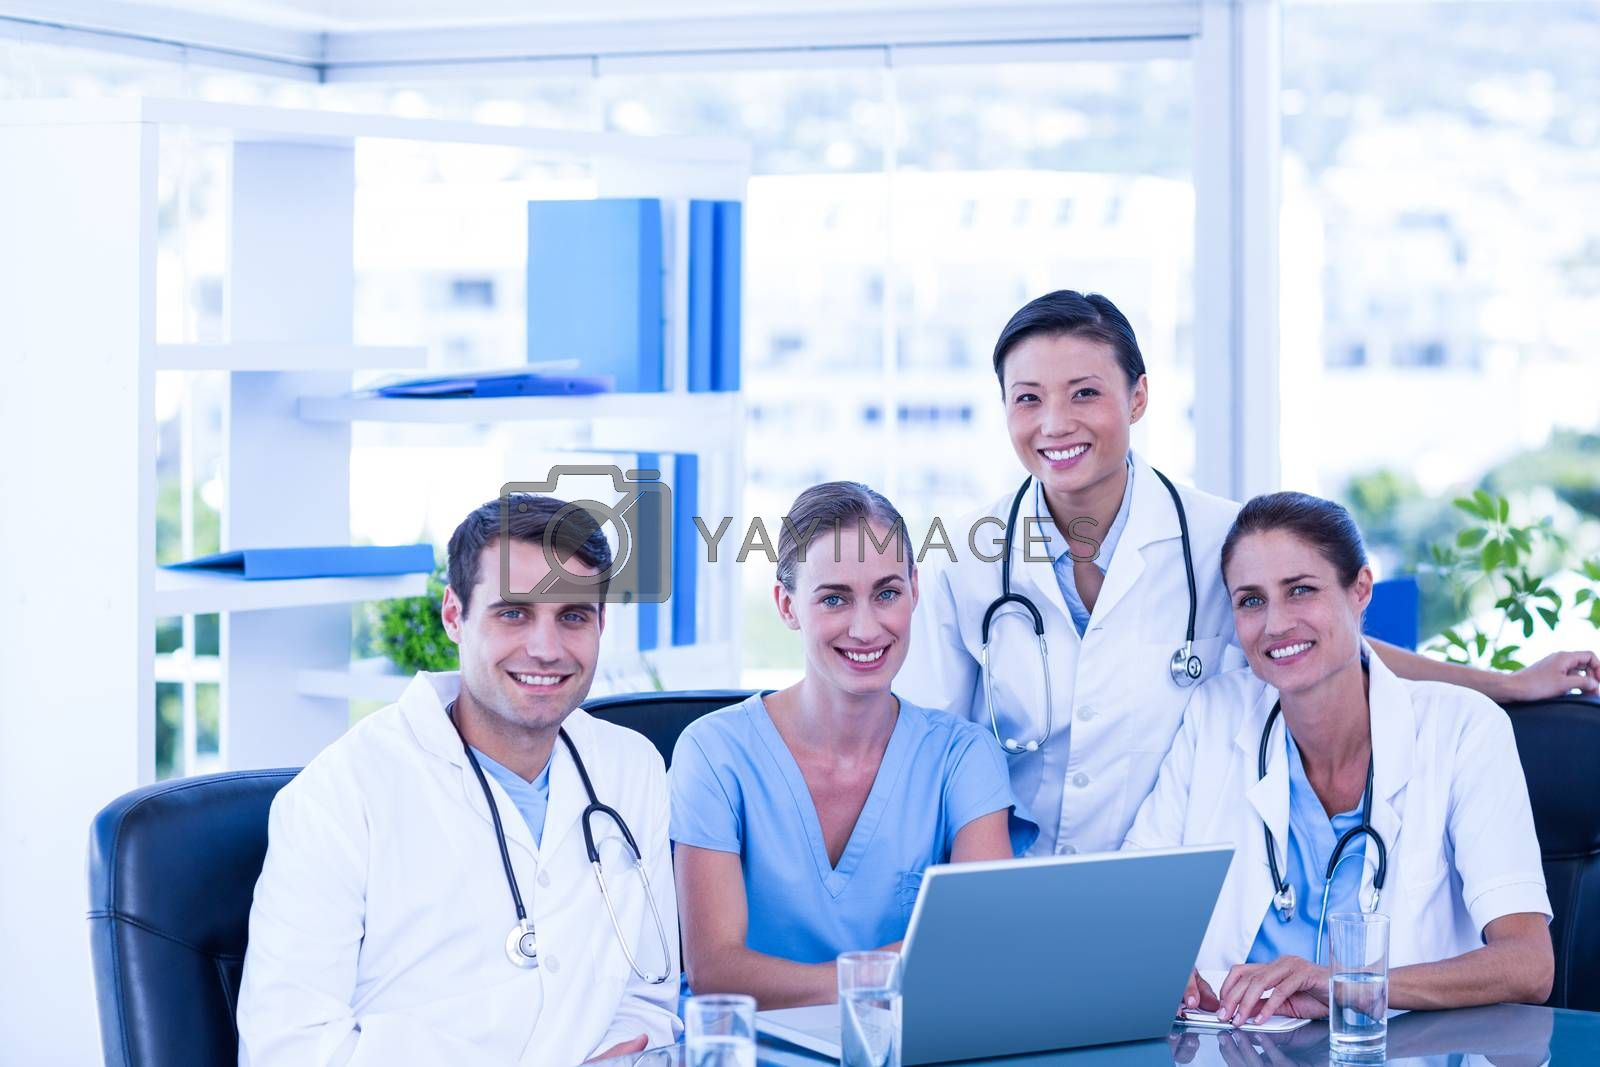 Royalty free image of Team of doctors smiling at camera by Wavebreakmedia